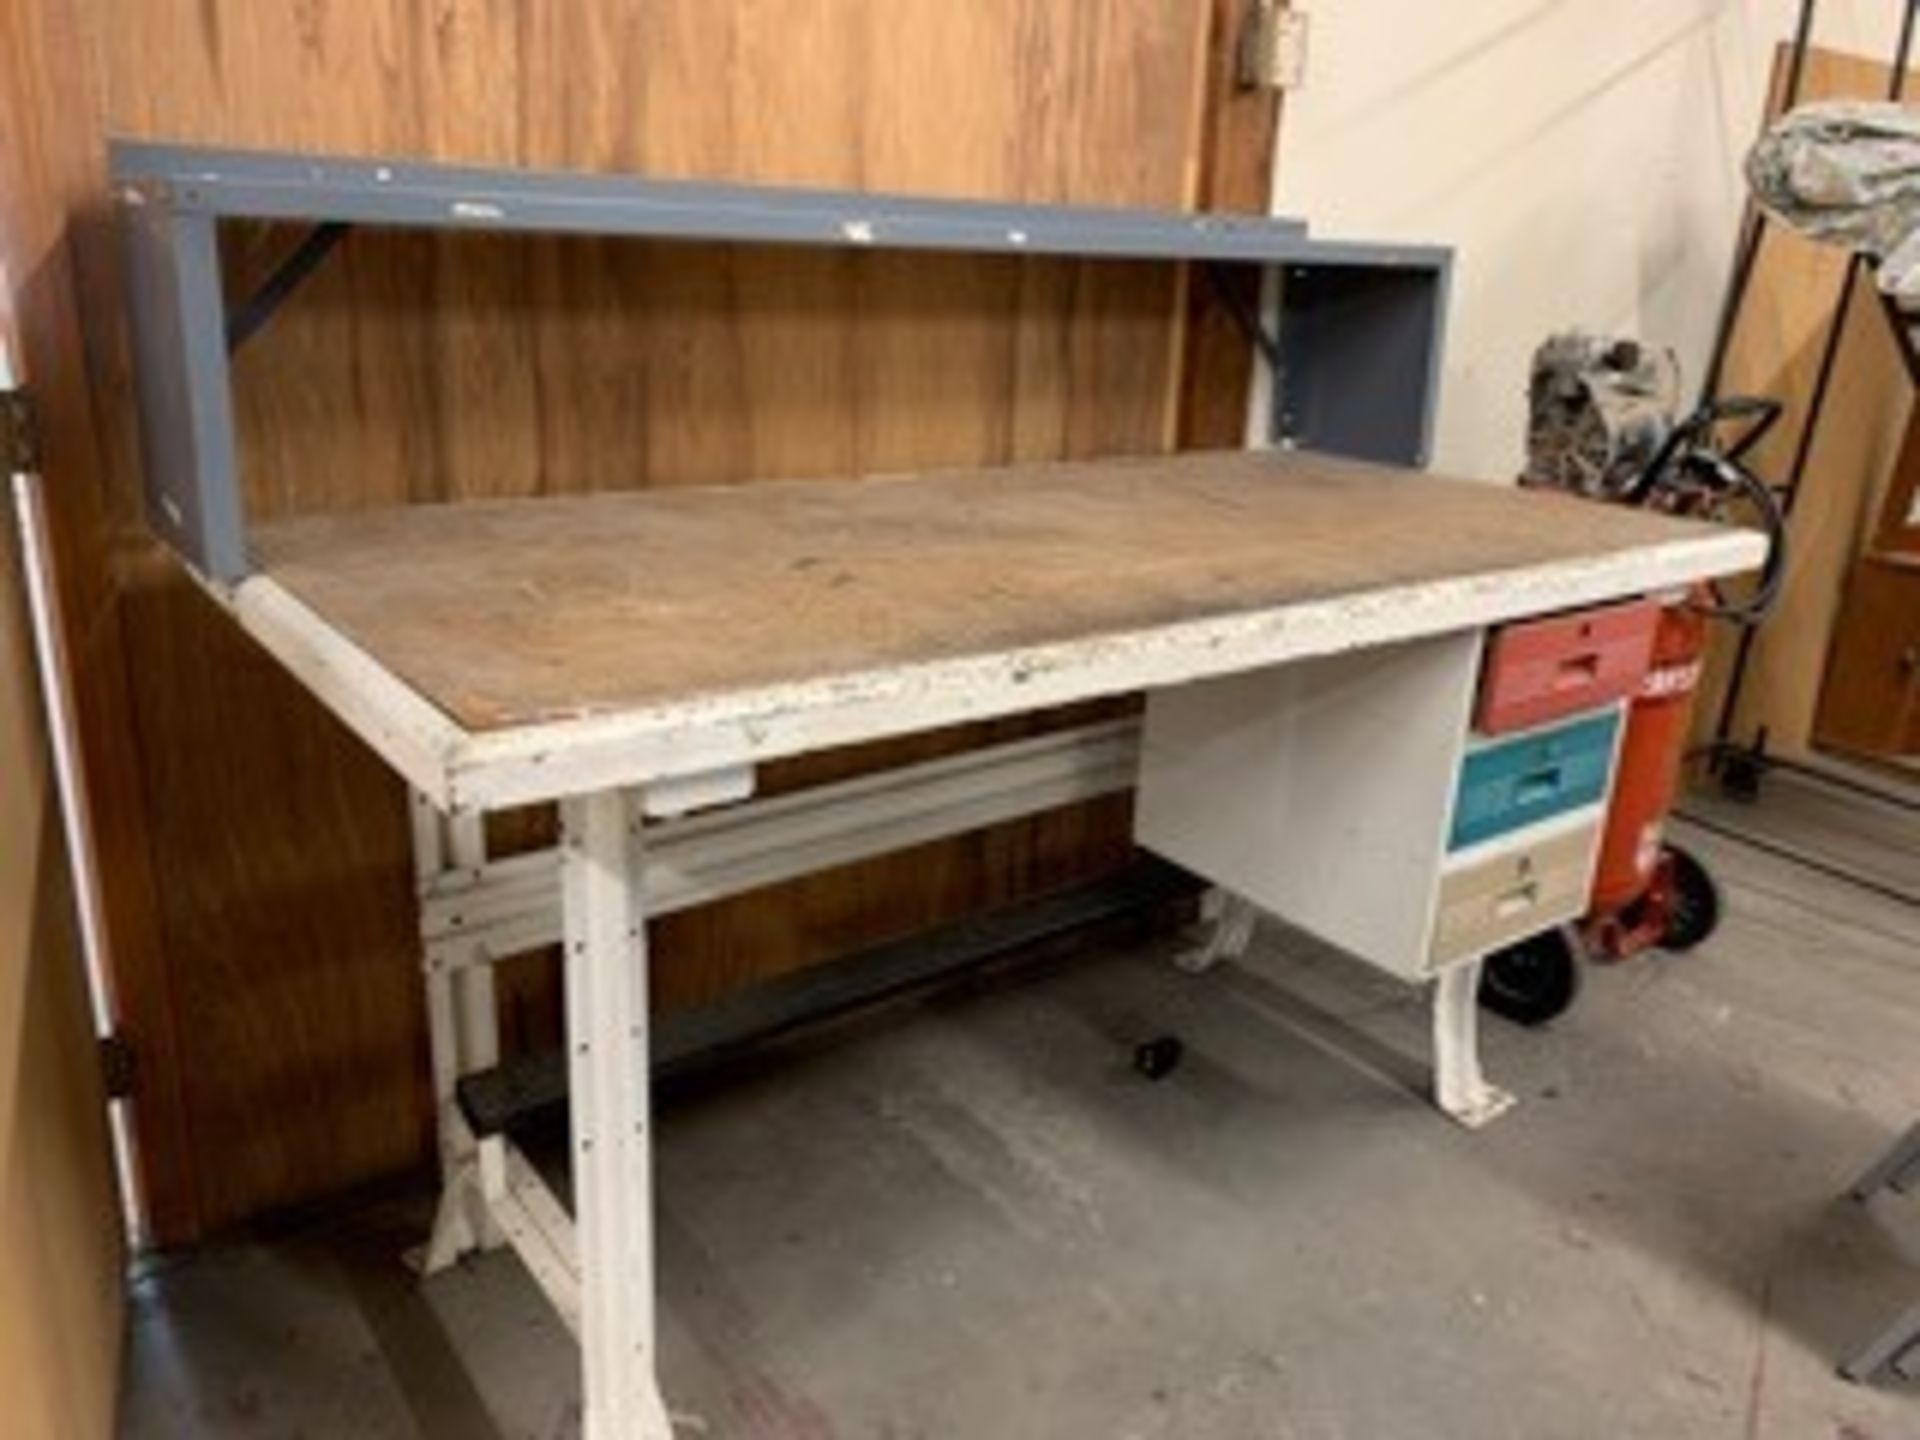 Lot 5071 - 6 FT. WORKBENCH (LOCATED AT: 16335 LIMA ROAD, HUNTERTOWN, IN 46748)